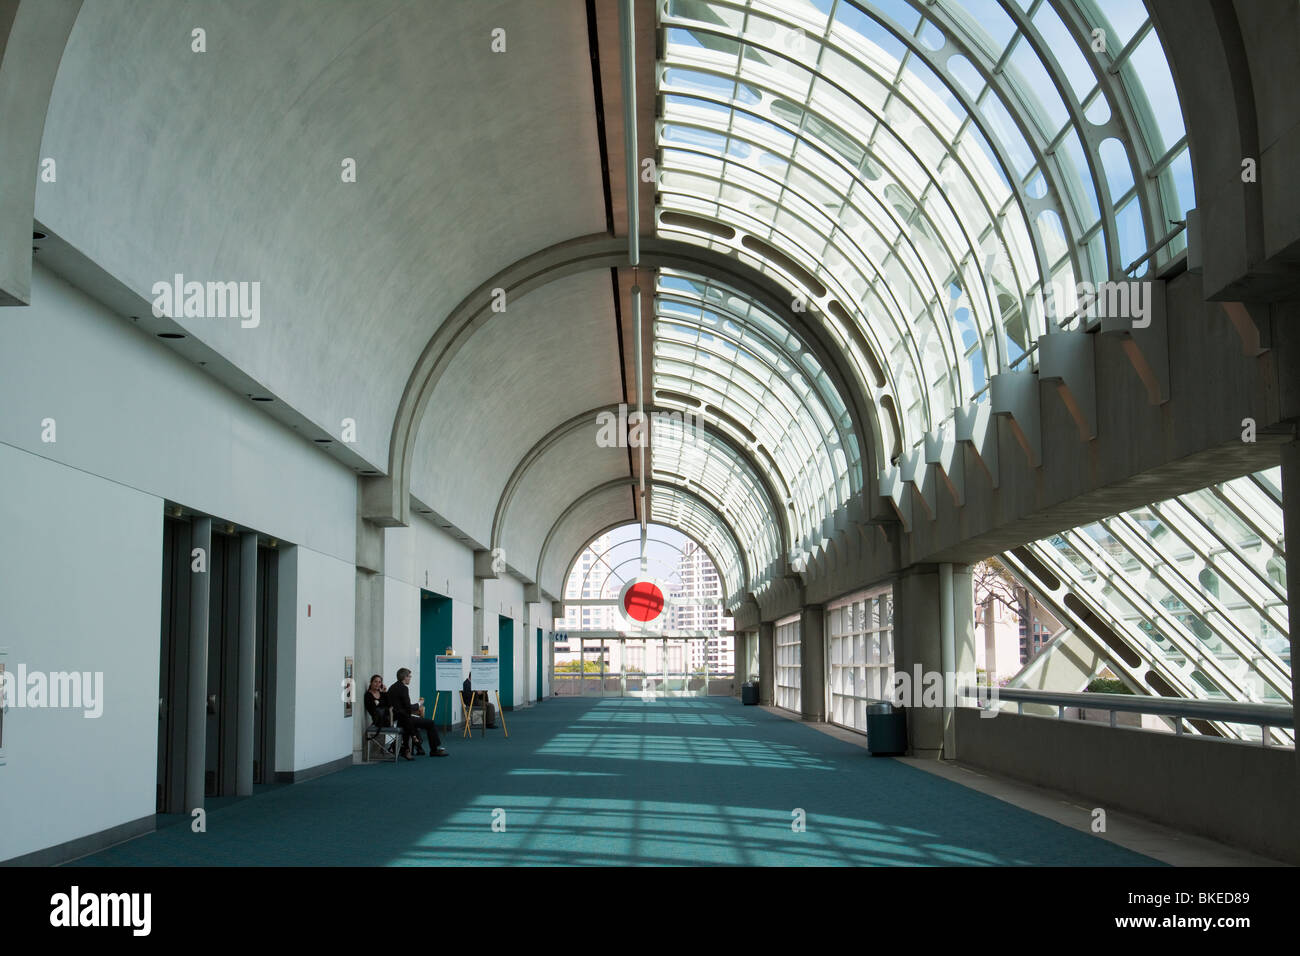 Sparsely populated hallway in San Diego Convention Center with curved glass ceiling - Stock Image